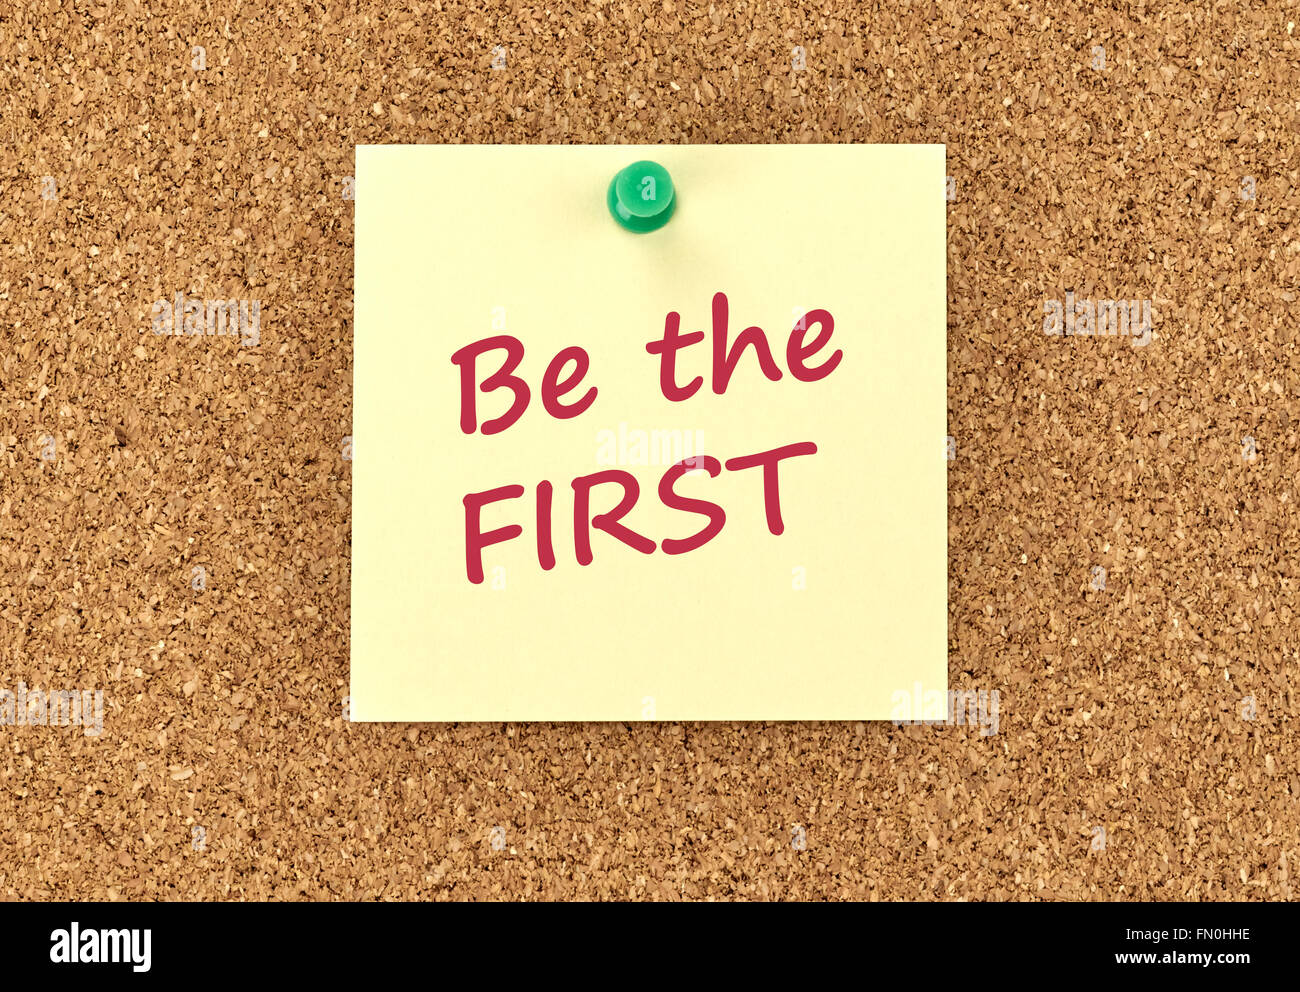 The phrase Be The First in red text on a yellow sticky note posted to a cork notice board. - Stock Image